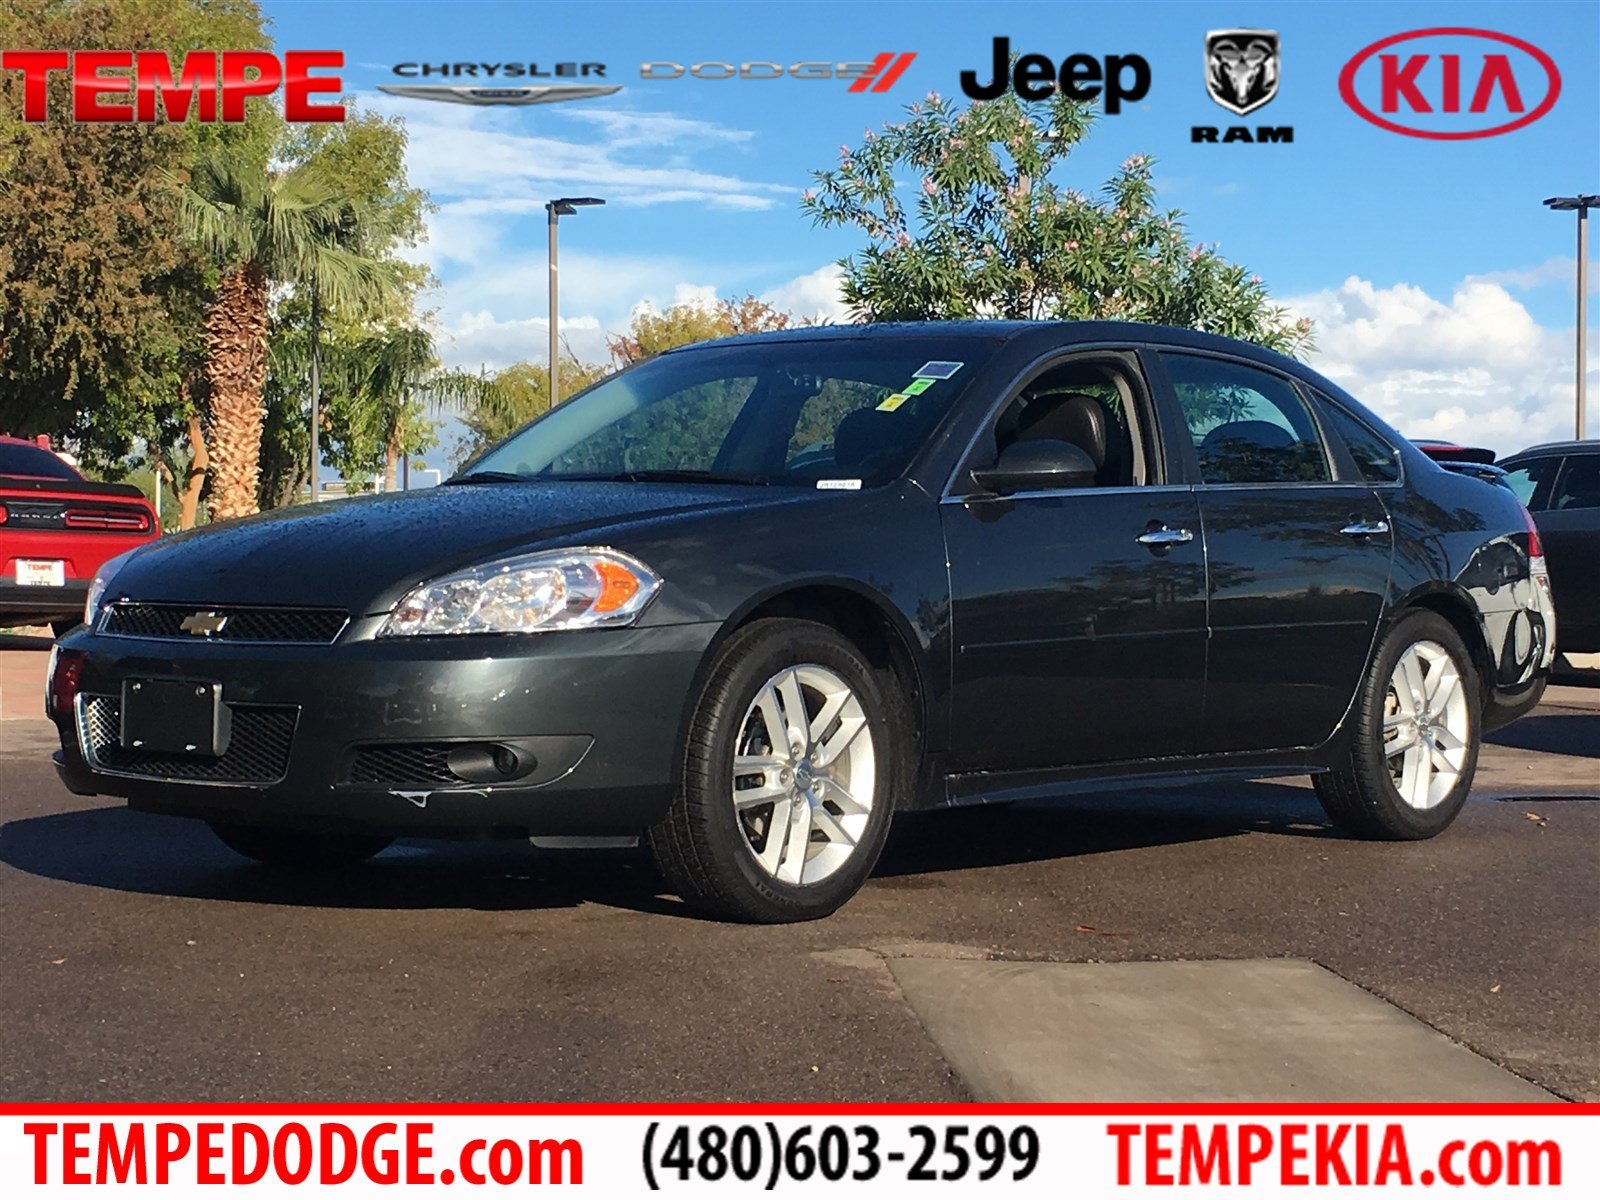 2013 Chevy Impala Ltz >> Pre Owned 2013 Chevrolet Impala Ltz Fwd 4dr Car